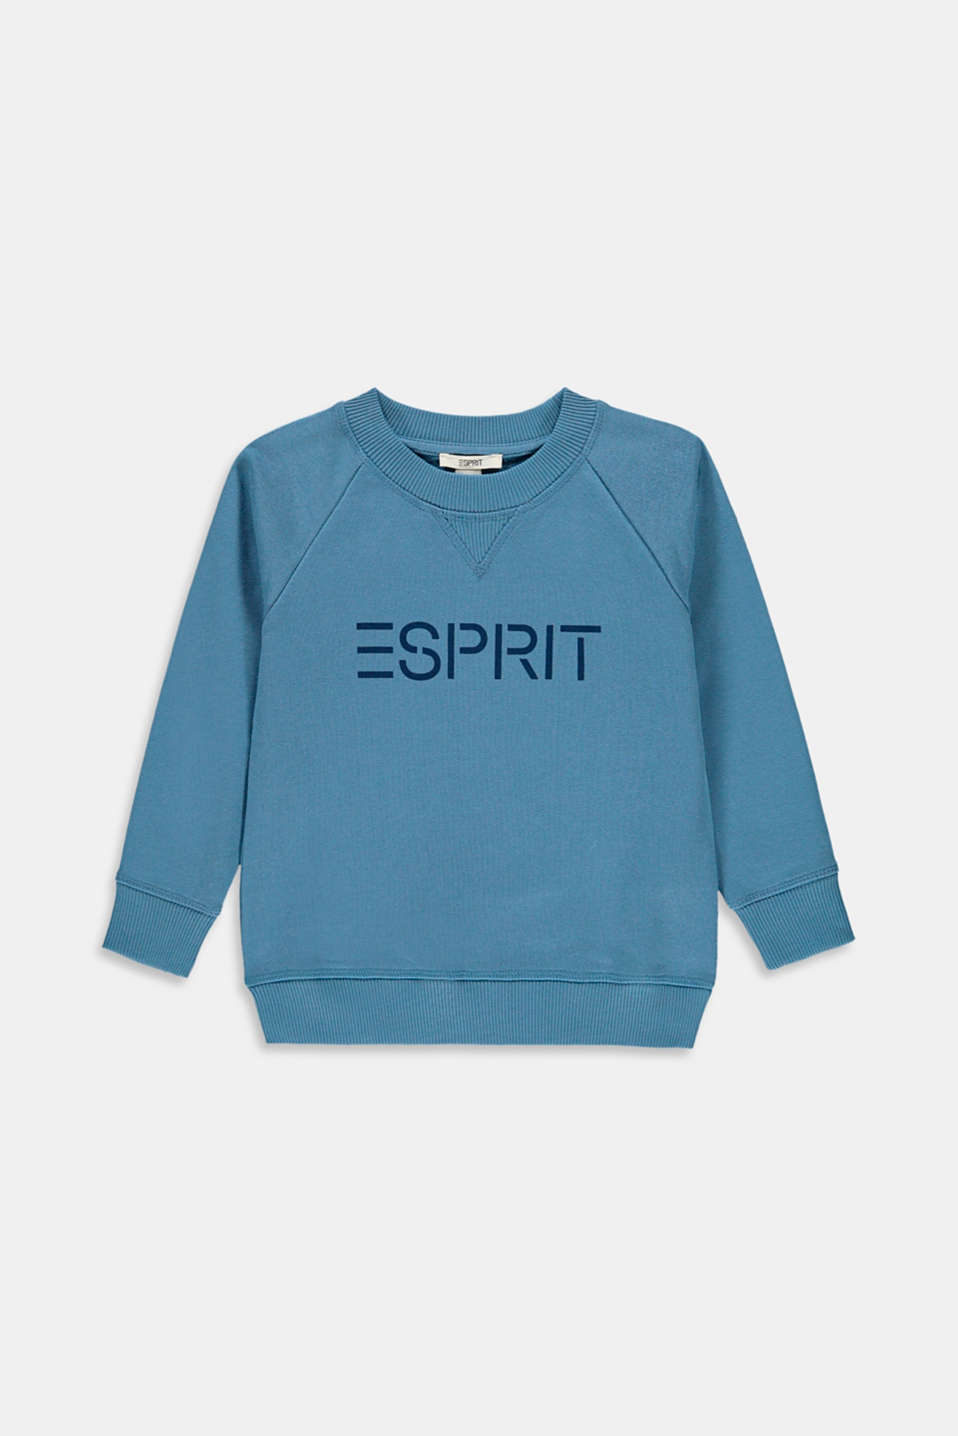 Esprit - Sweat-shirt à logo, 100 % coton